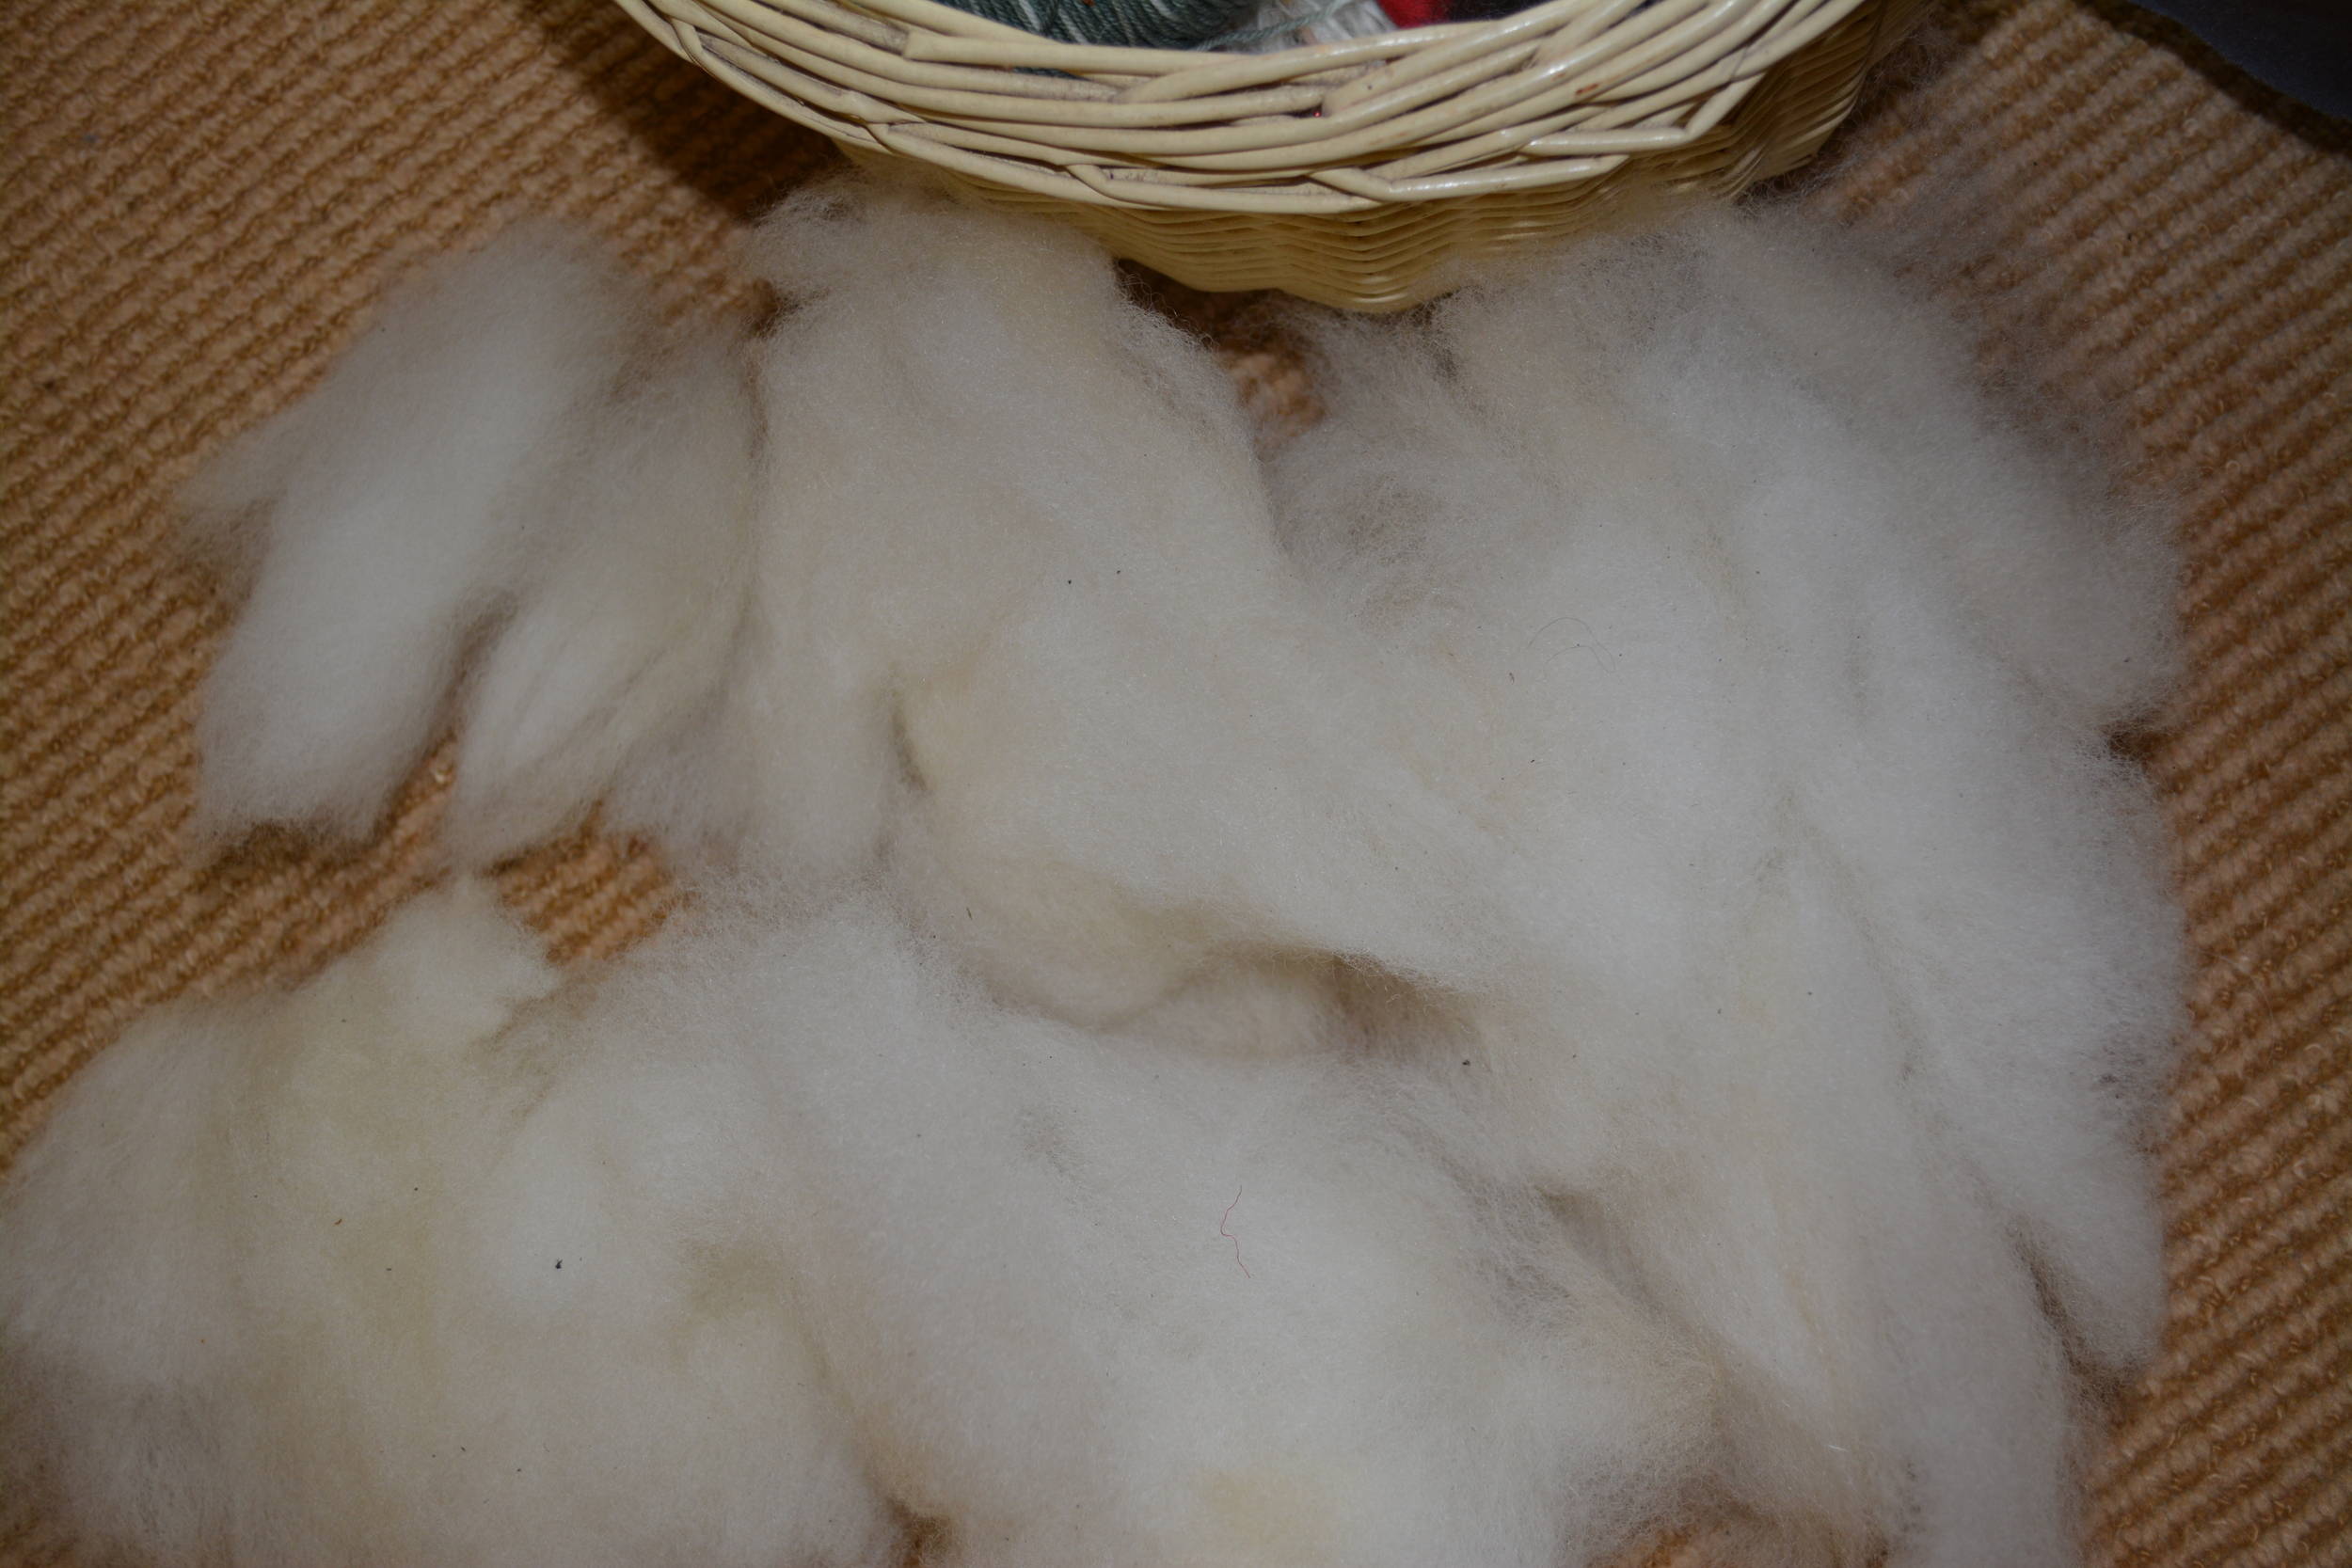 Cheviot fleece, washed and hand flicked.